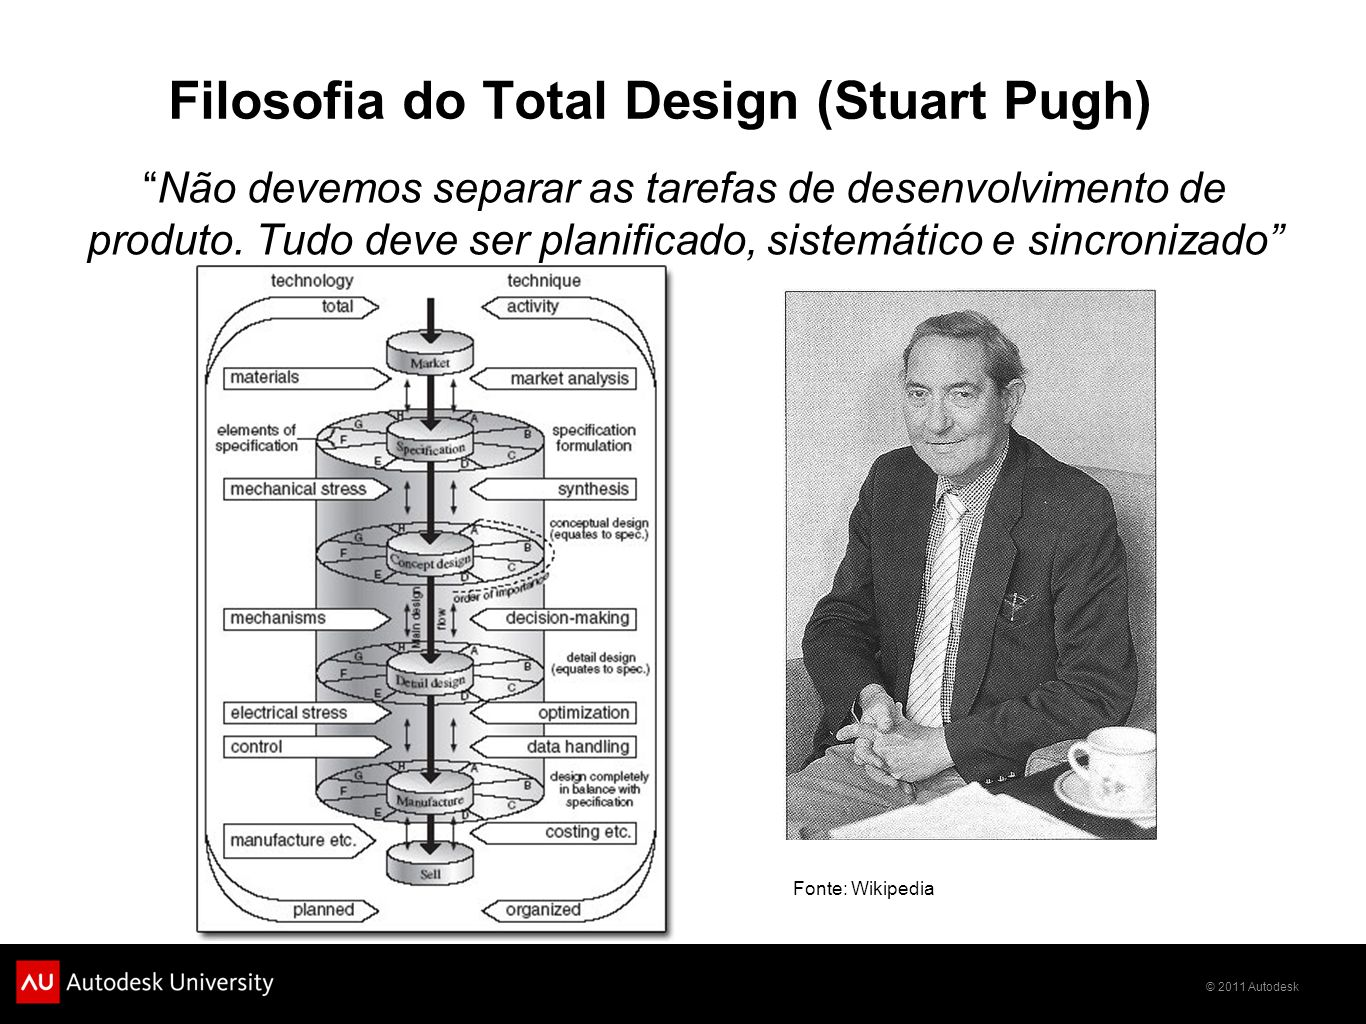 Filosofia do Total Design (Stuart Pugh)